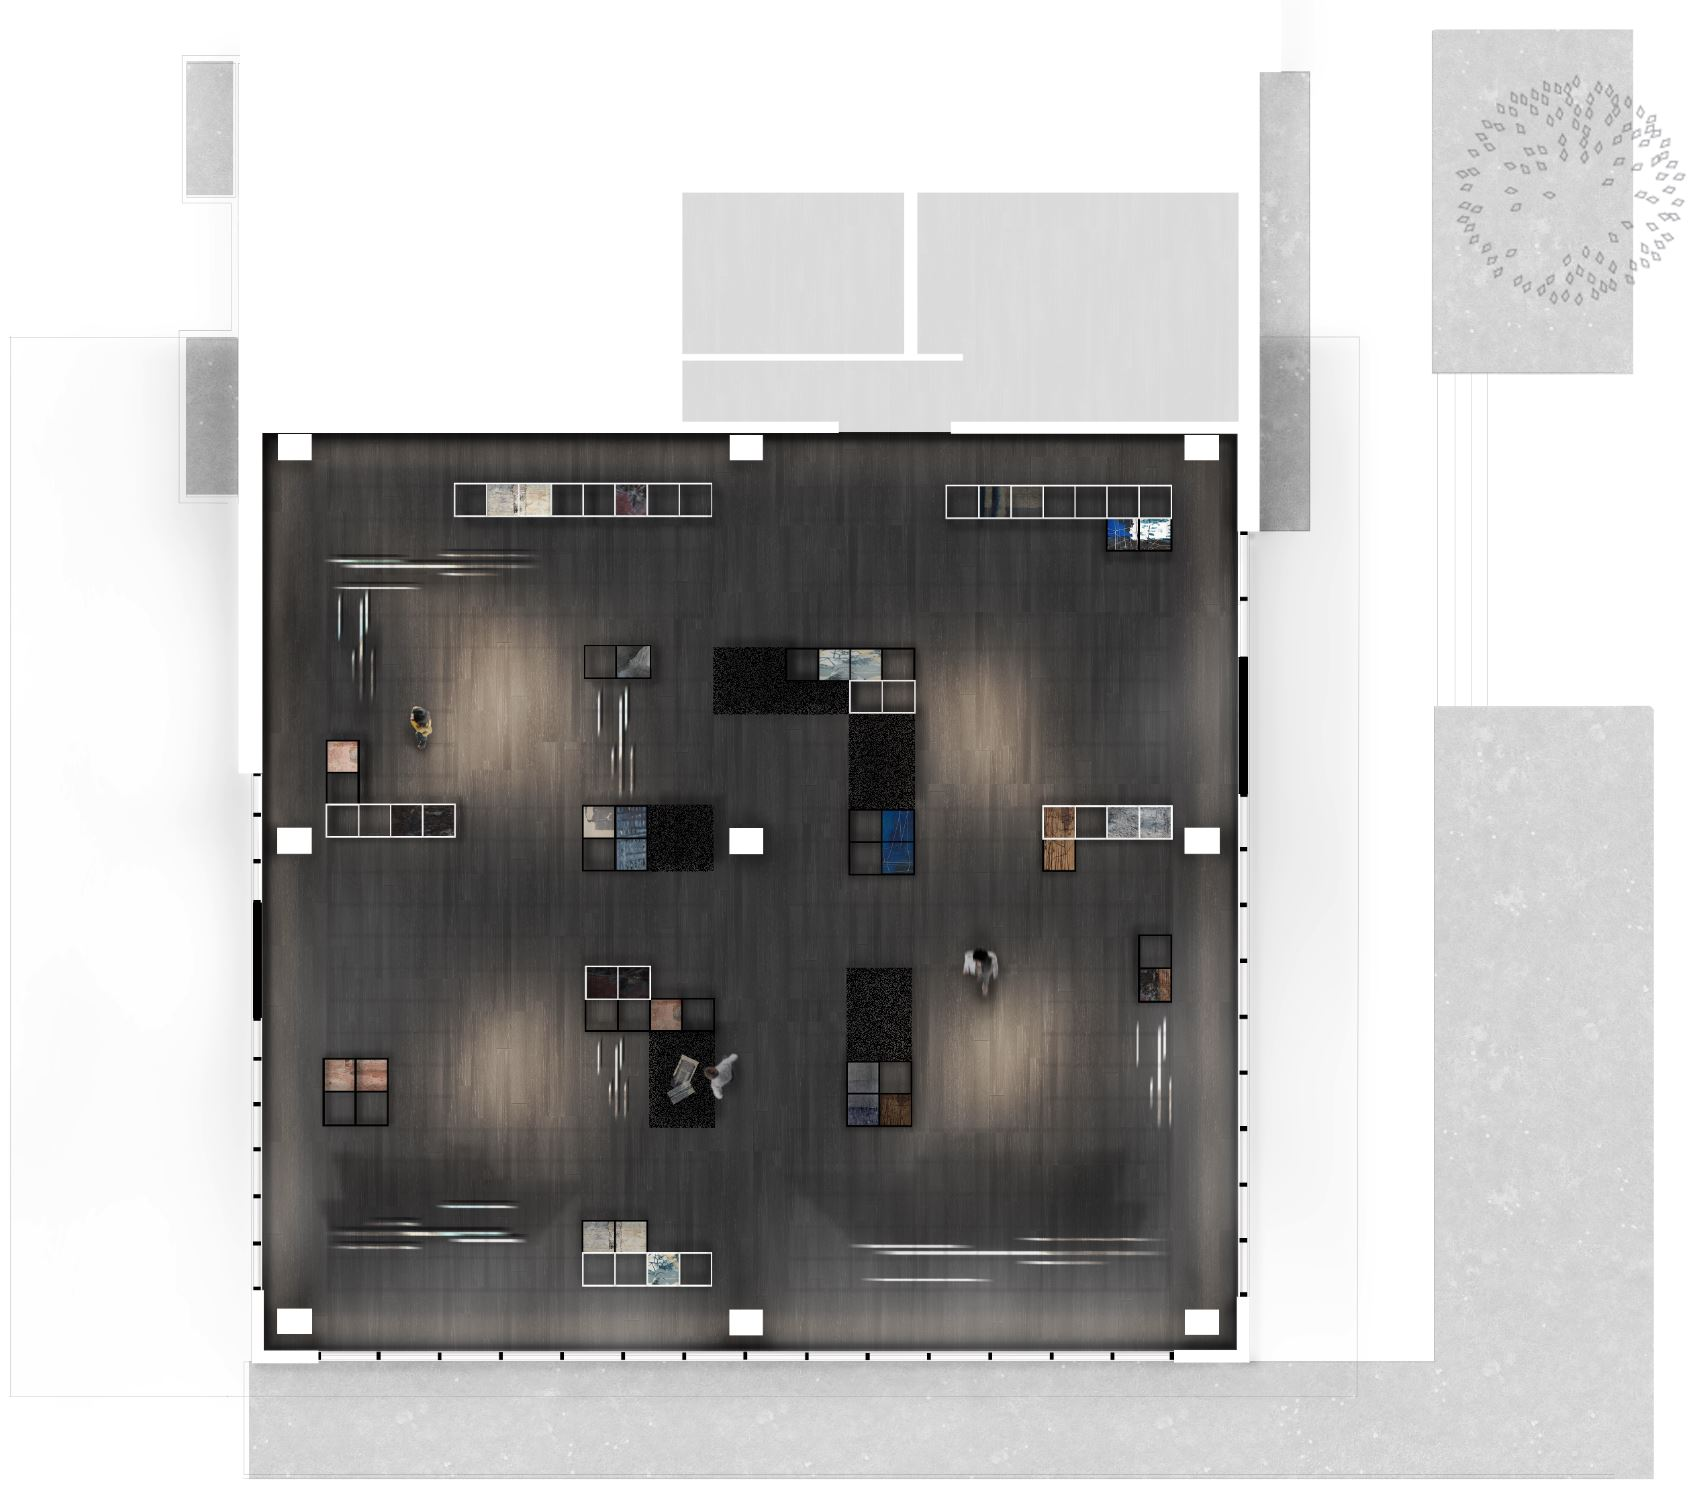 Pulp Showroom, Rendered Floor Plan